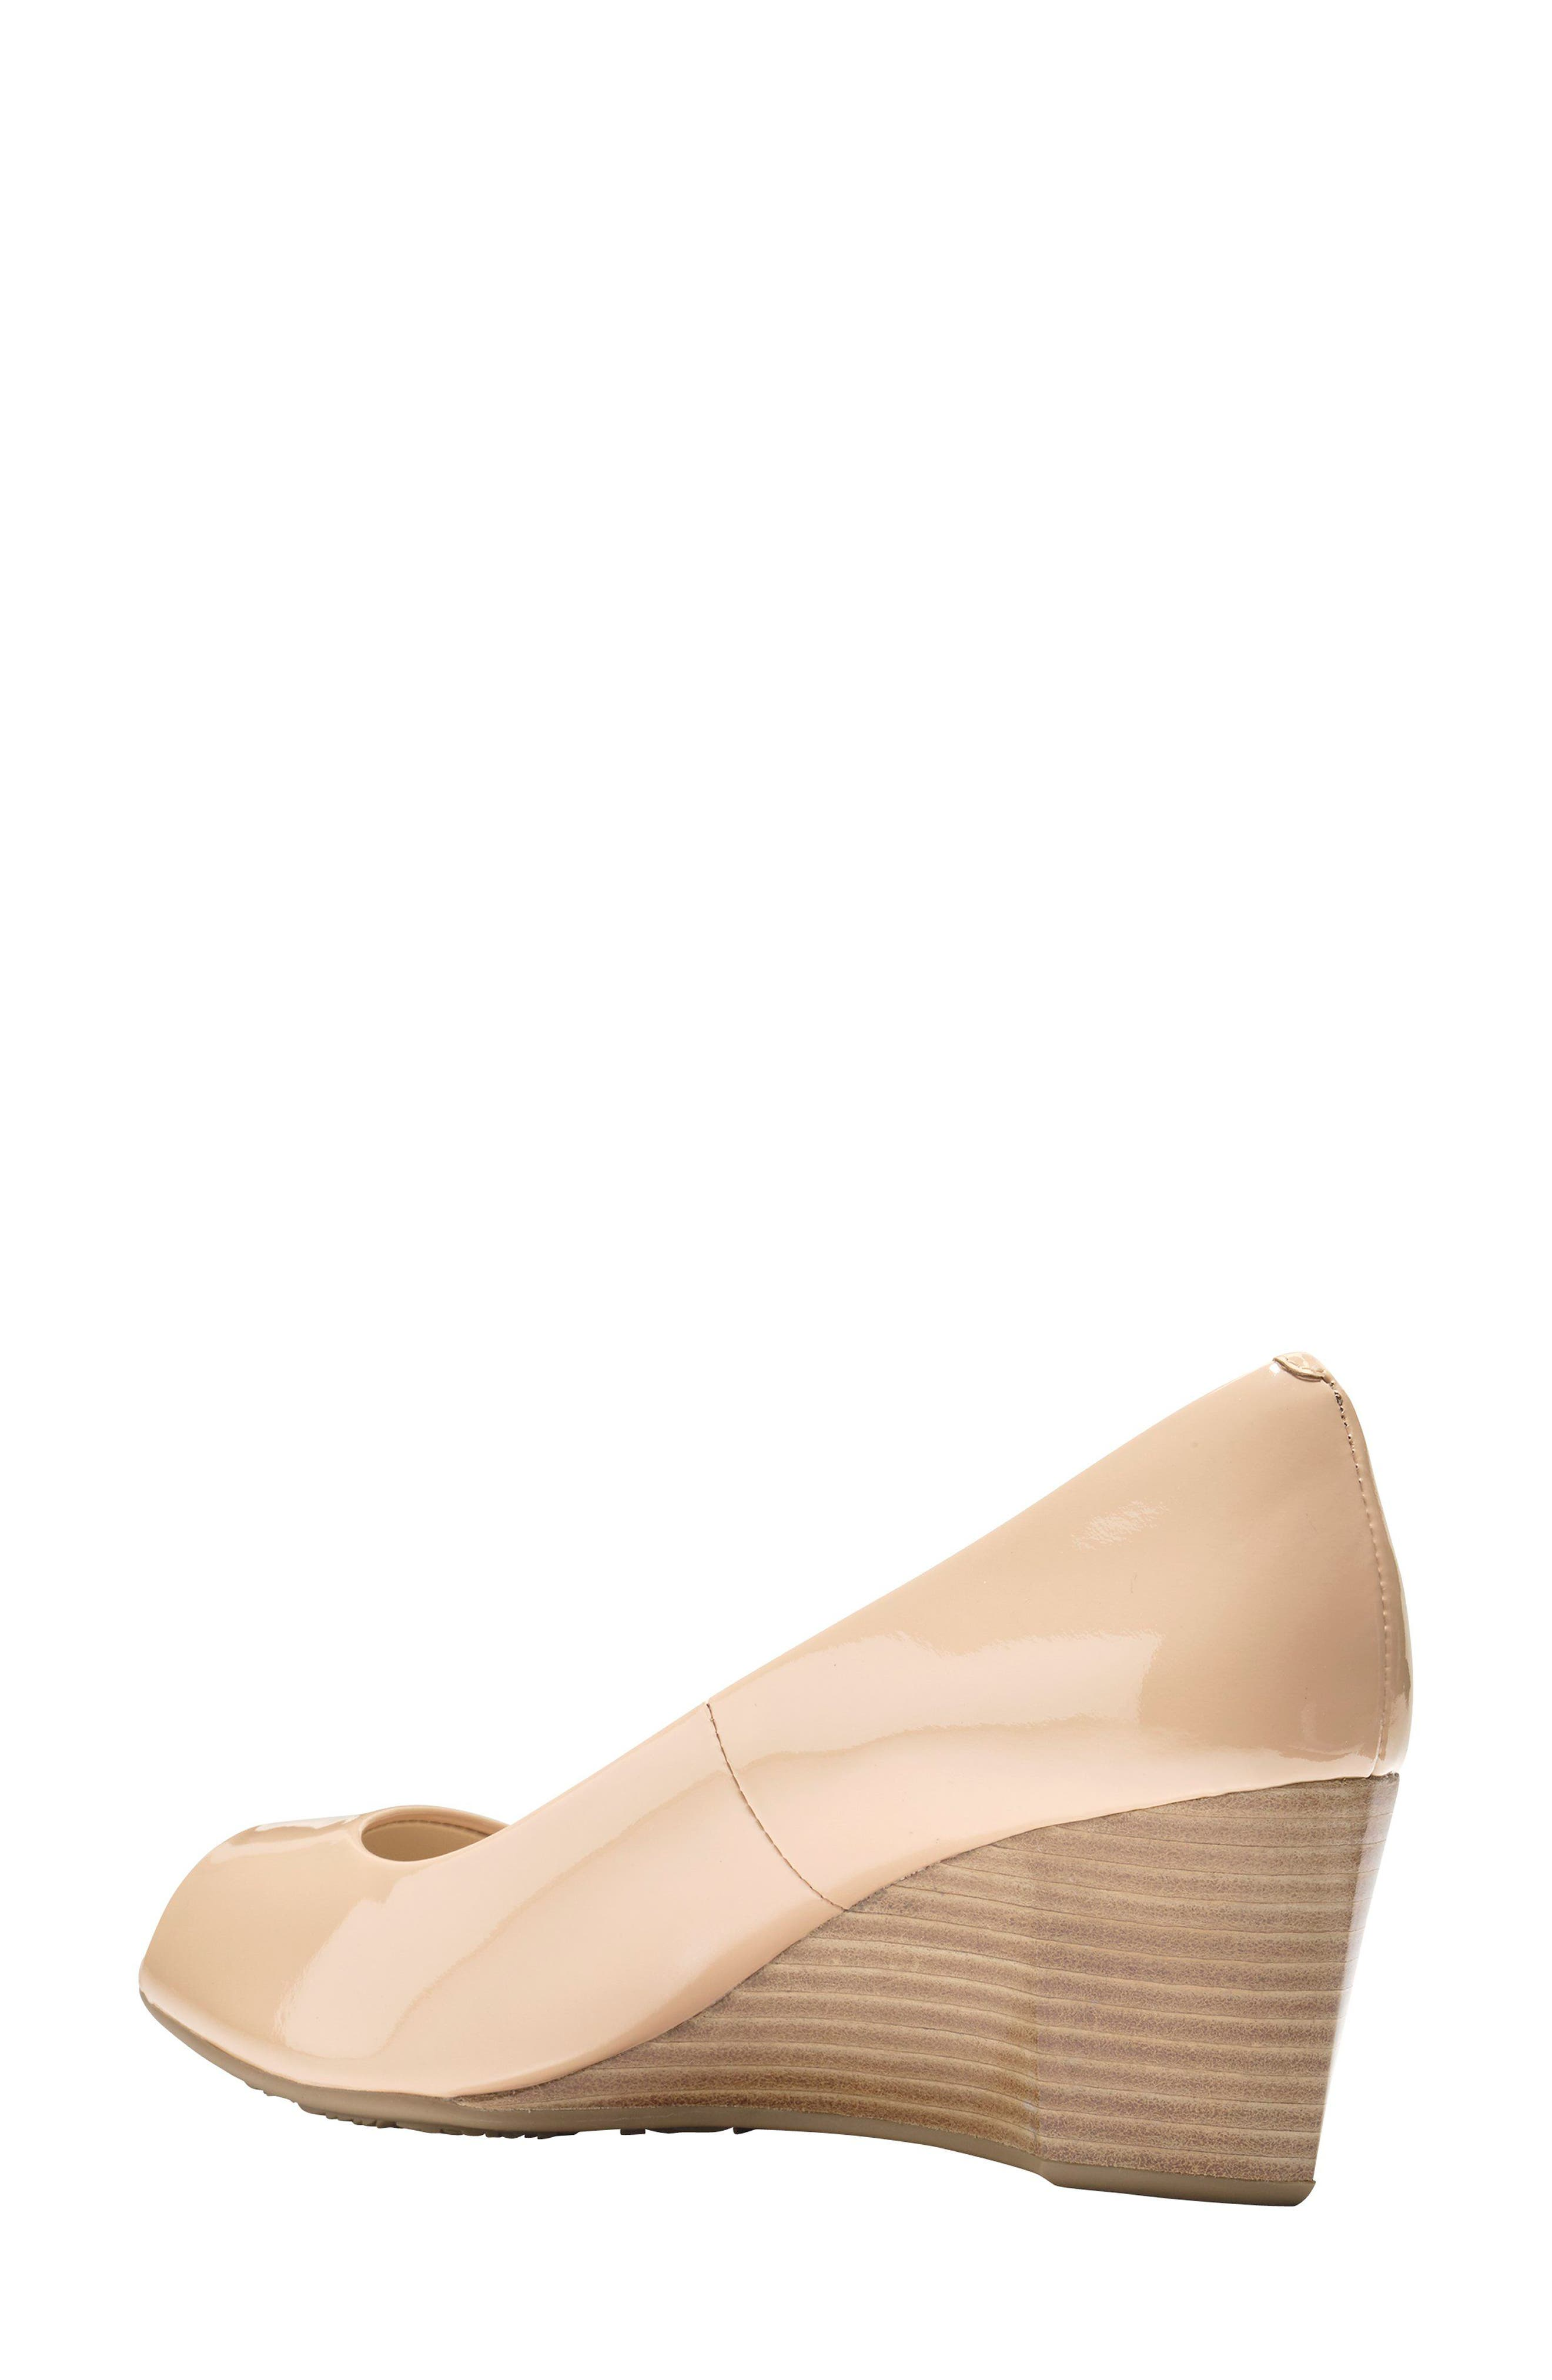 Sadie Open Toe Wedge Pump,                         Main,                         color, NUDE PATENT LEATHER